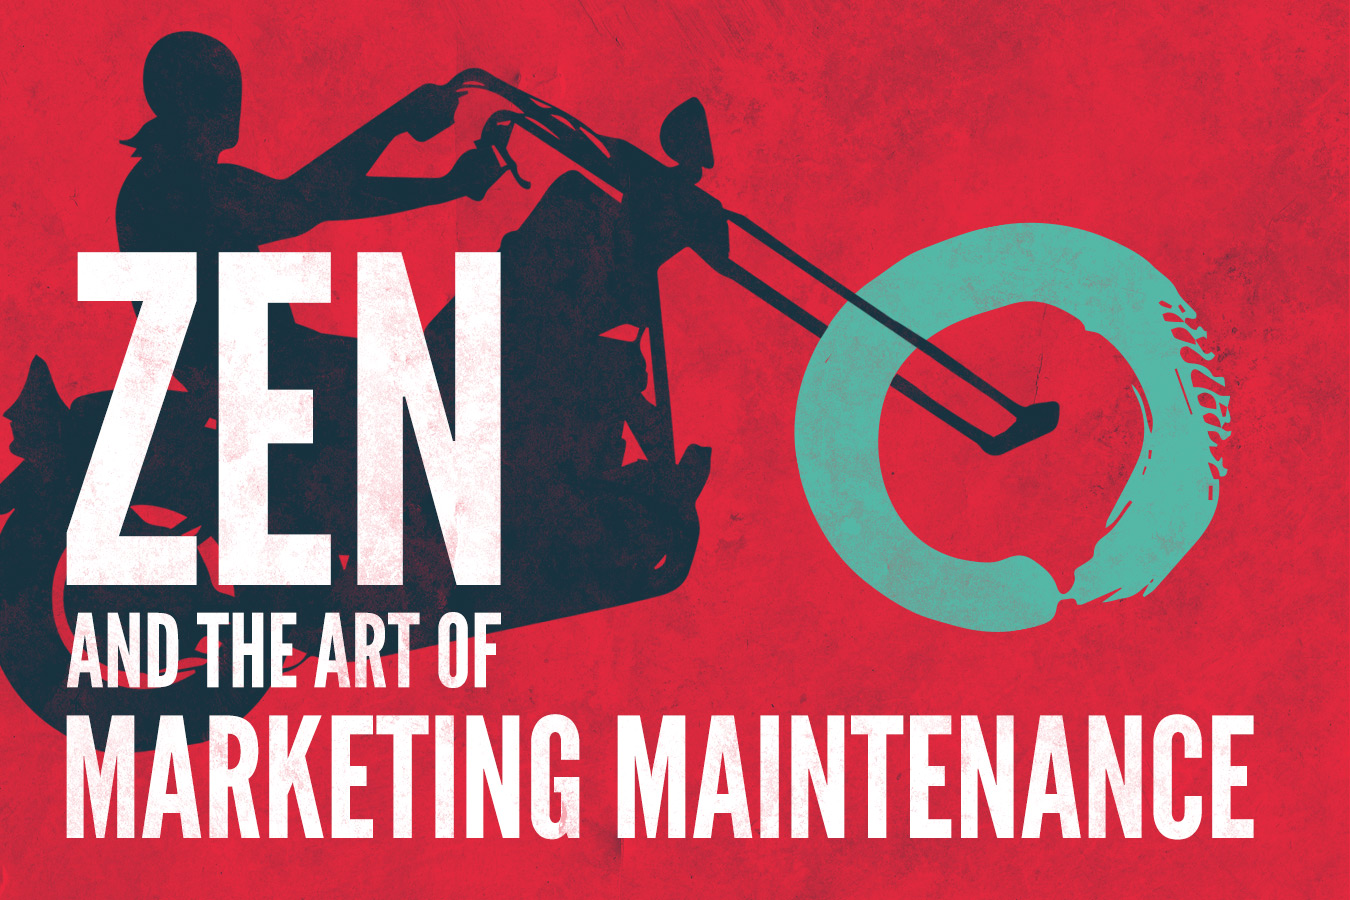 Zen and the art of Marketing Maintenance